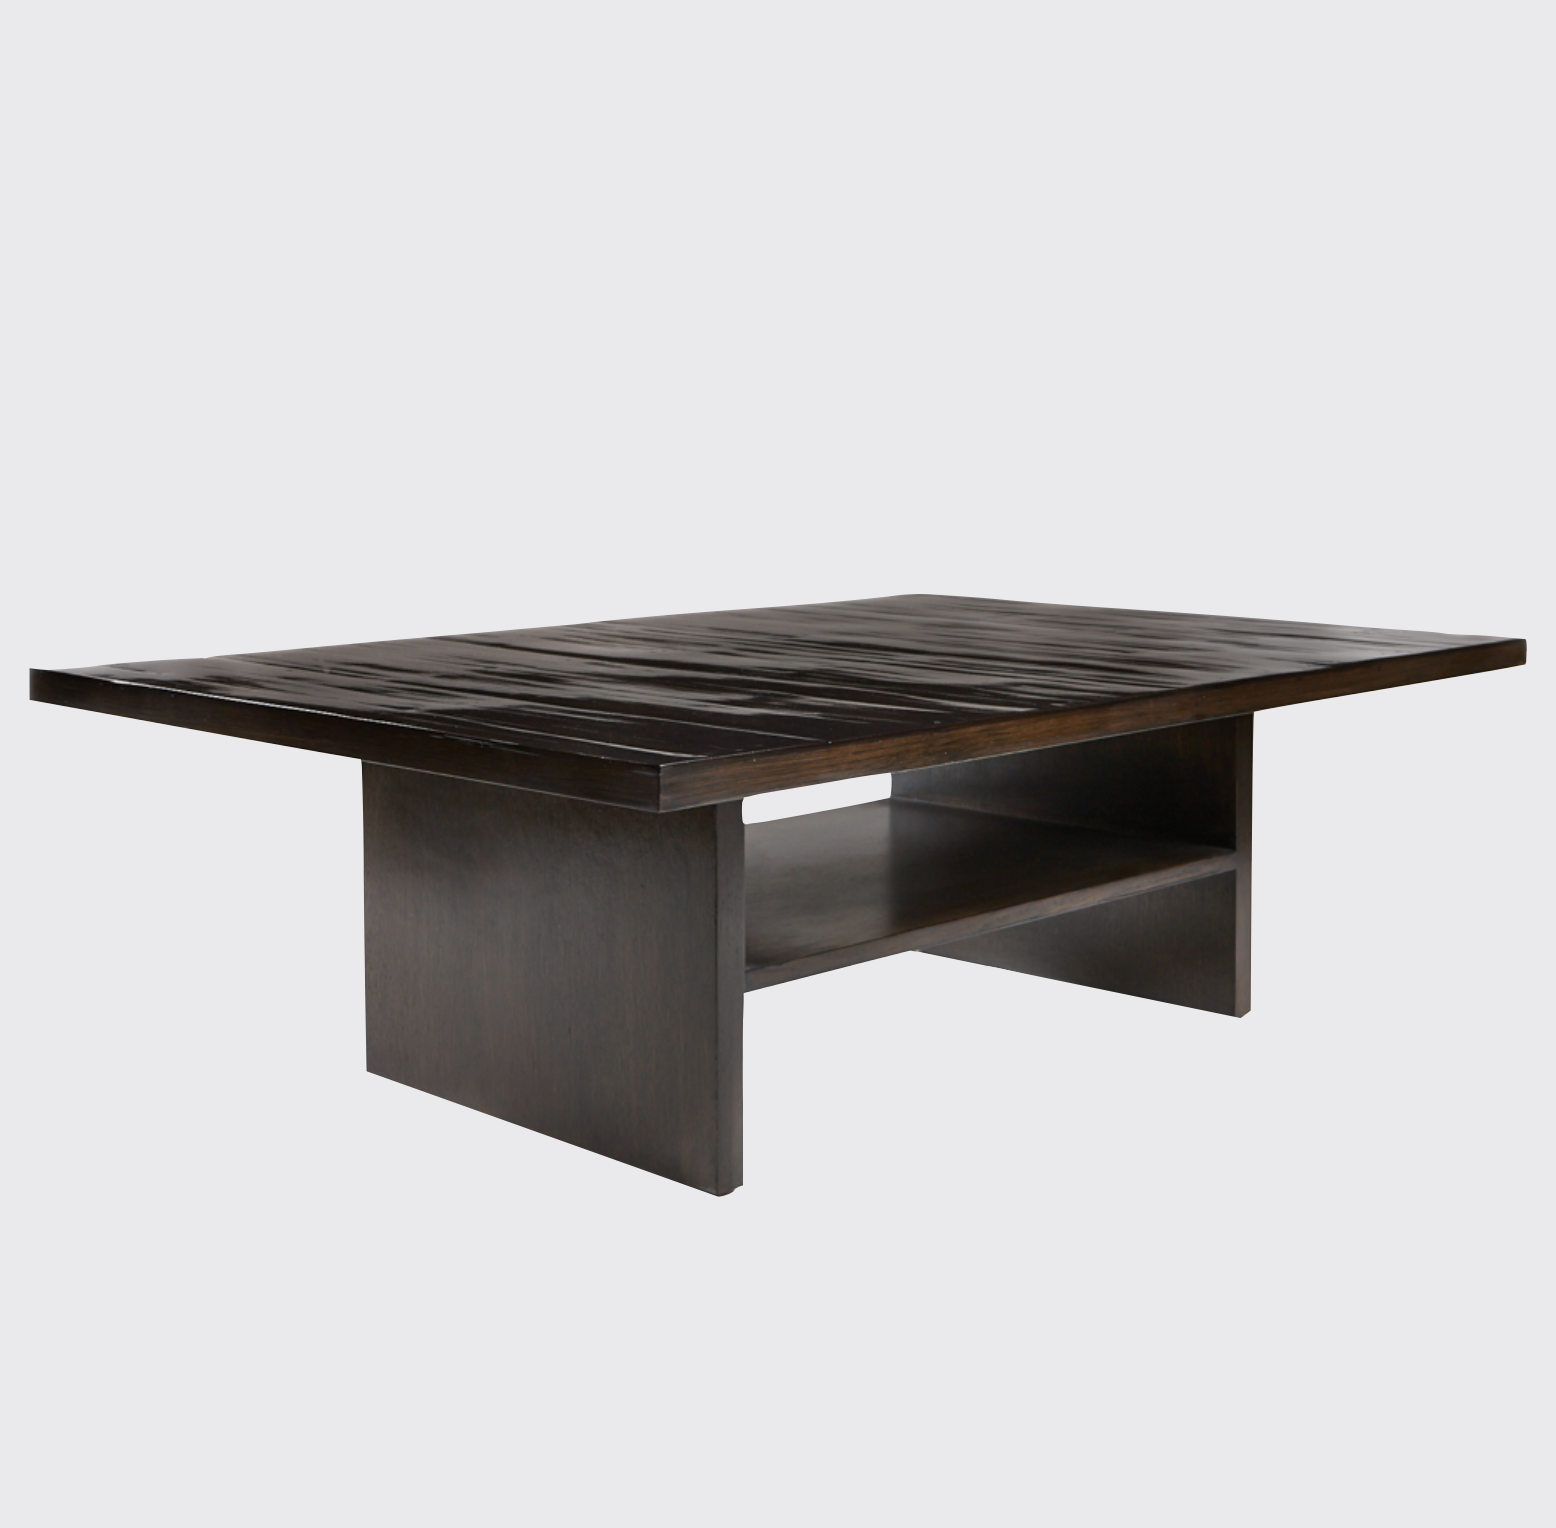 Aguirre Design - Bamboo and Oak Coffee Table